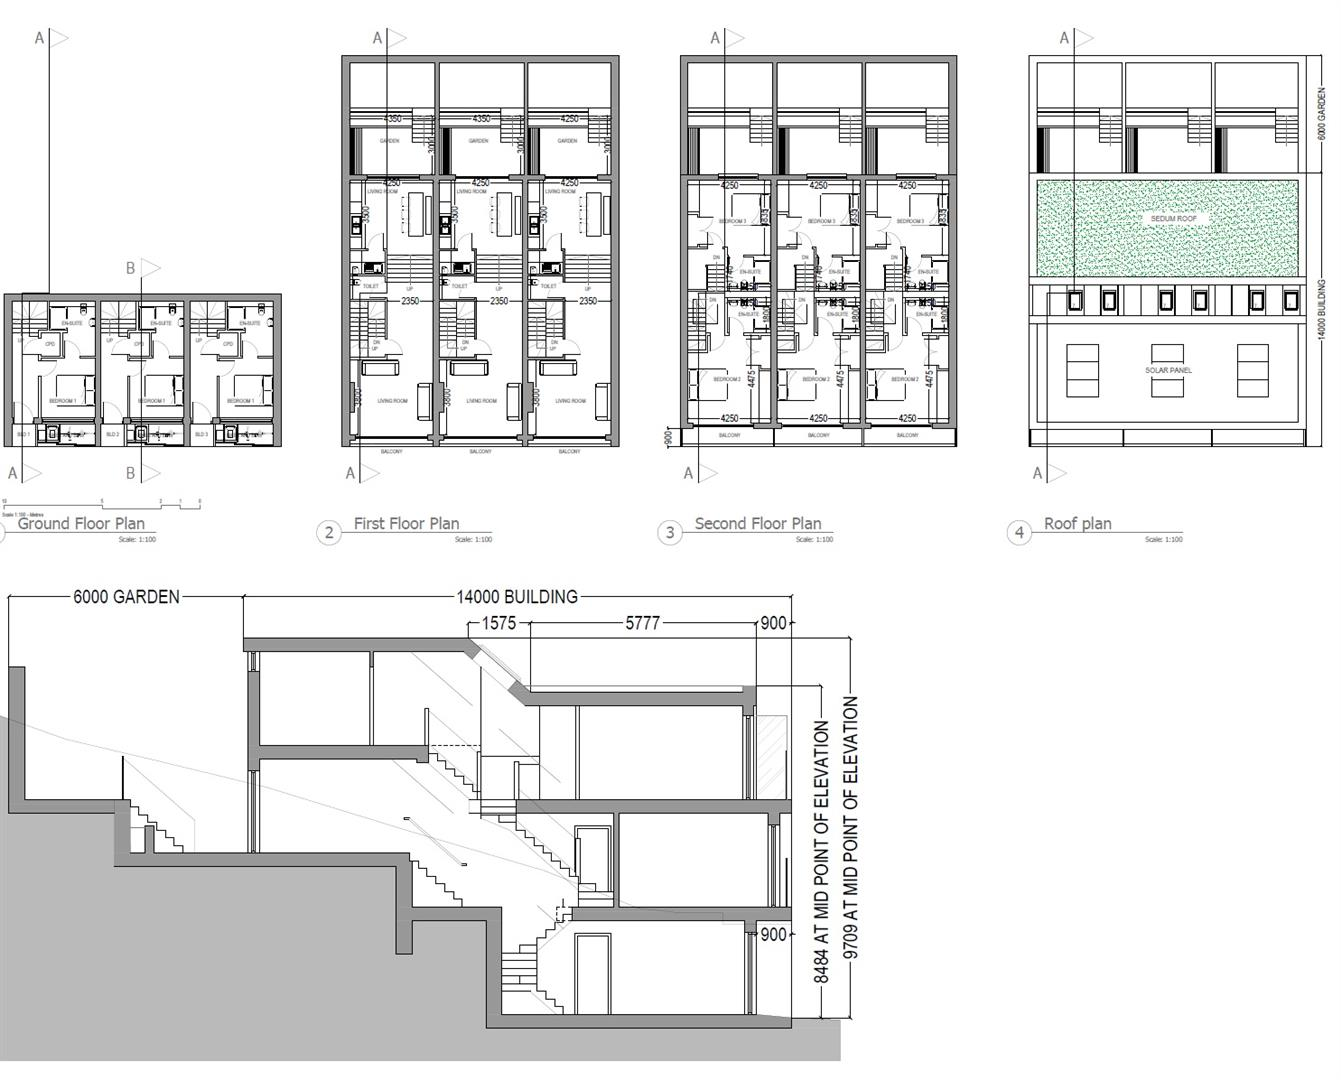 Floorplans For Land @ Eldon Terrace, Windmill Hill, Bristol